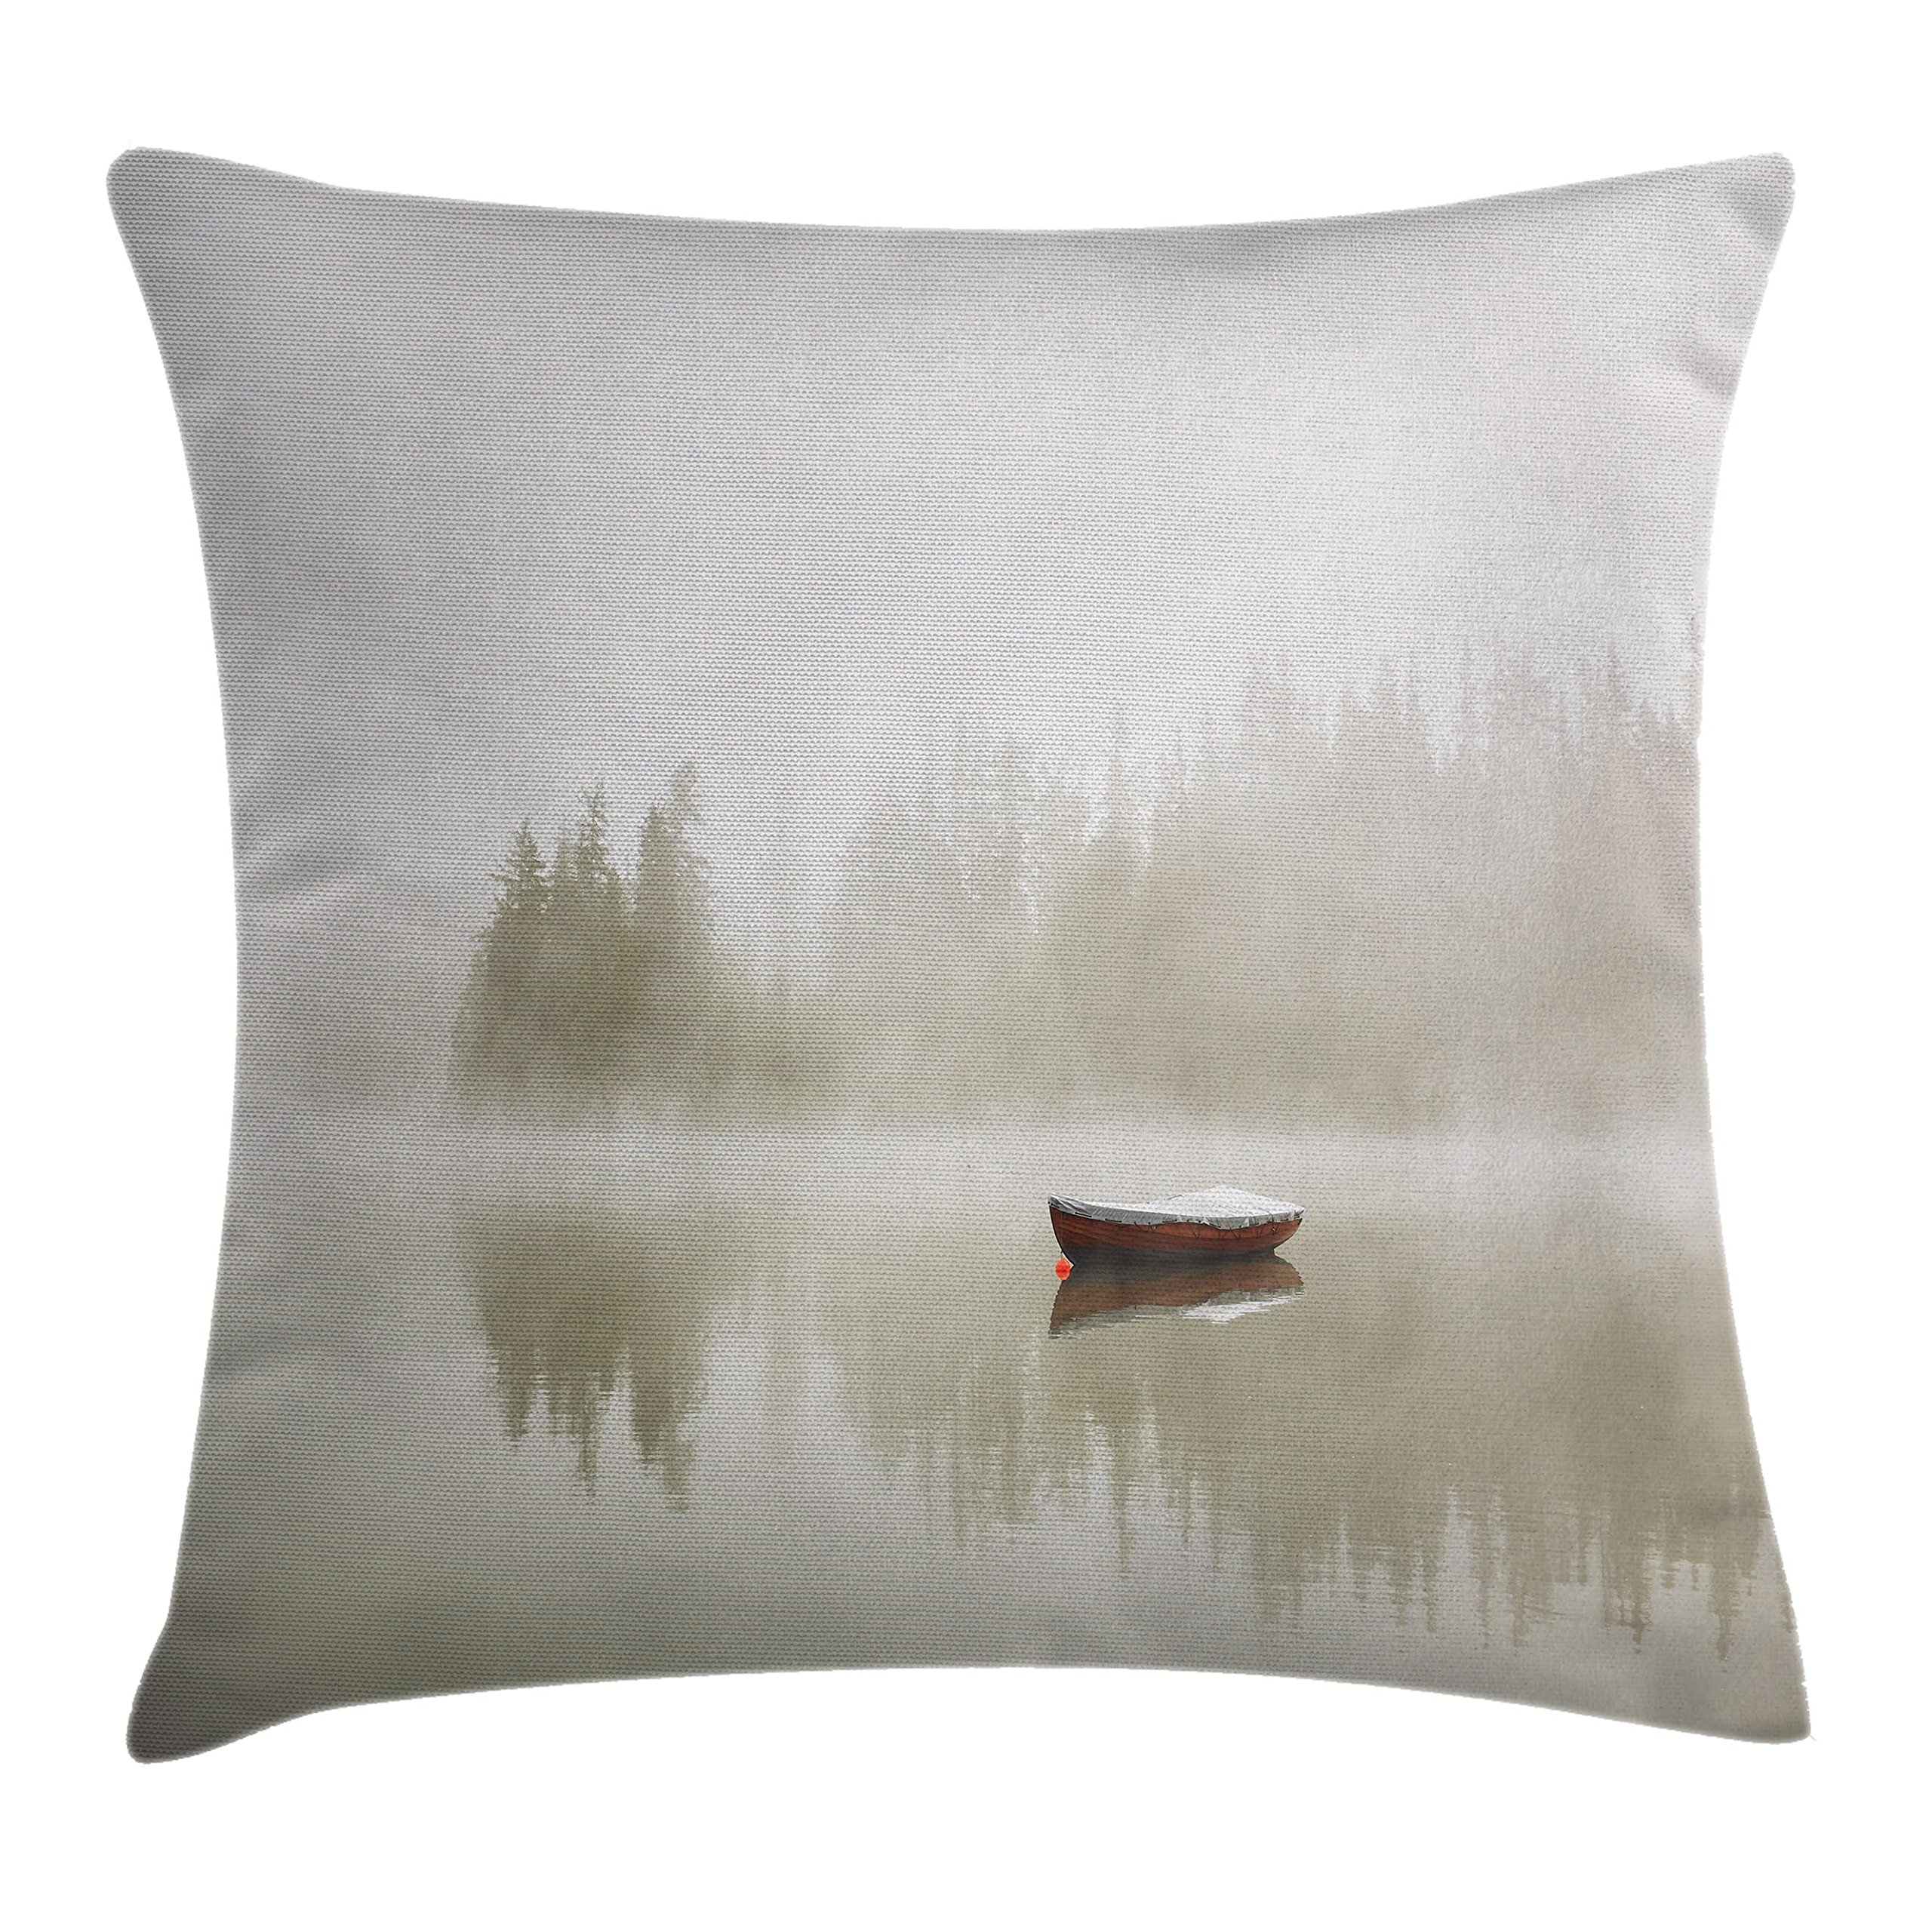 Ambesonne Landscape Throw Pillow Cushion Cover, Boat on The Lake with Silhouettes of Trees on The Water Sky Nature Art, Decorative Square Accent Pillow Case, 18 X 18 Inches, Eggshell Brown Orange